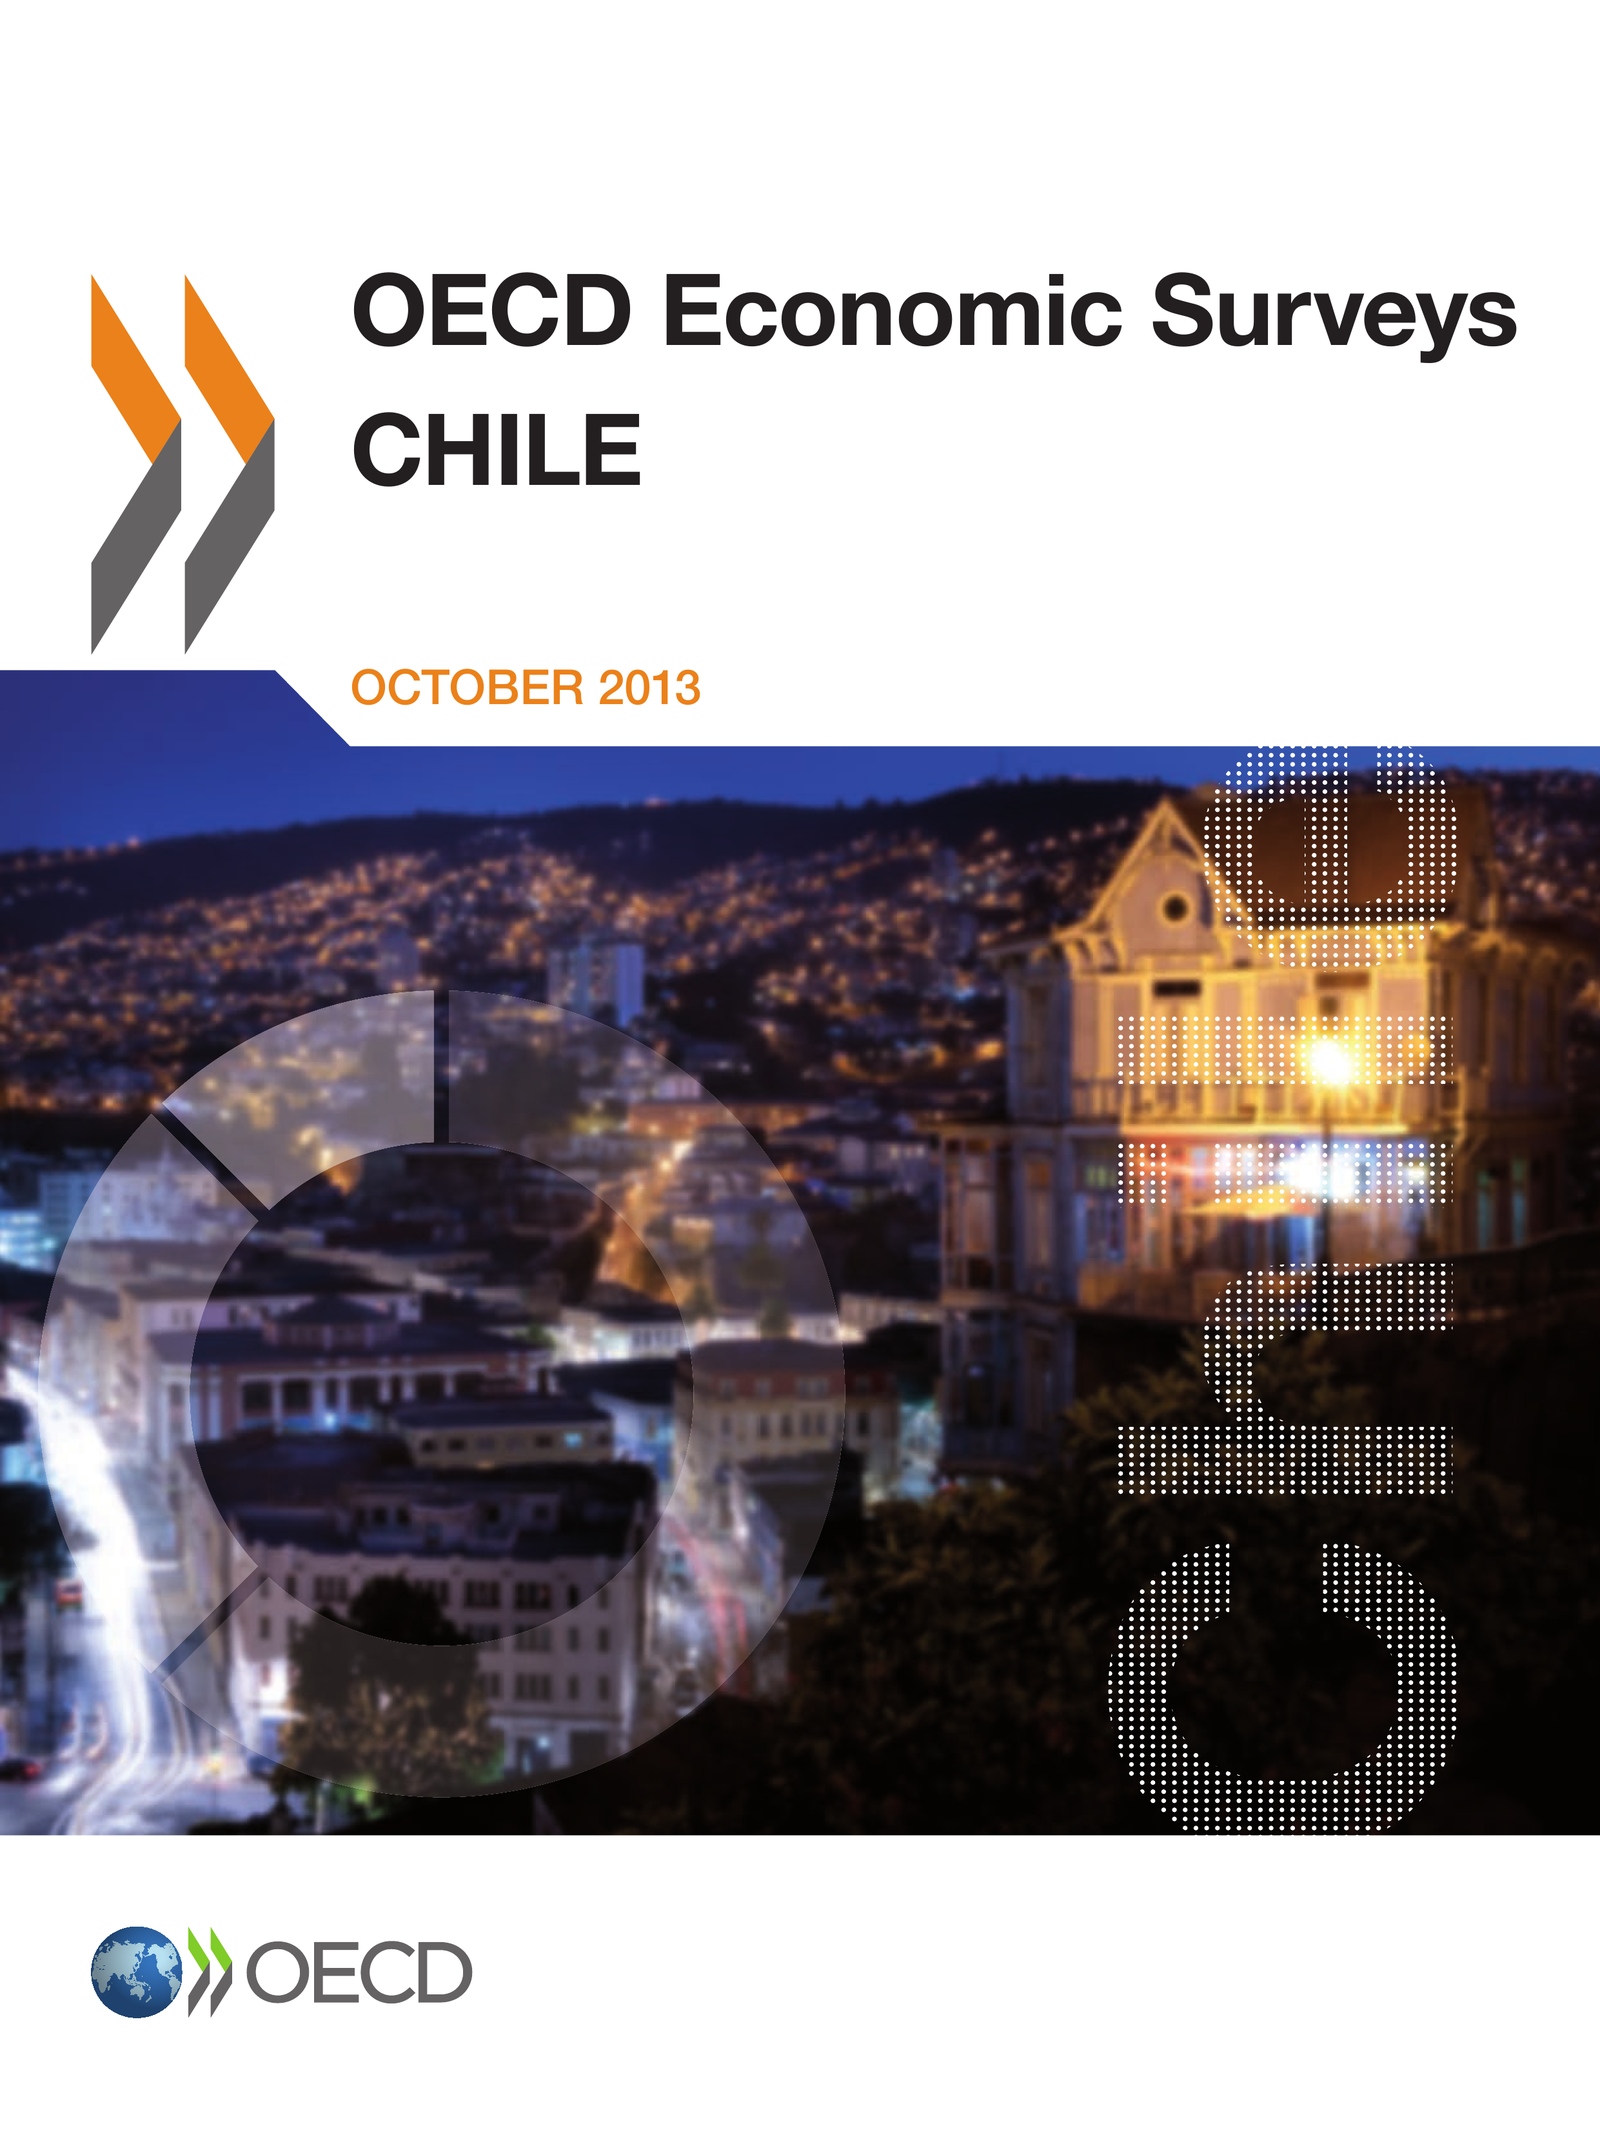 OECD Economic Surveys: Chile 2013